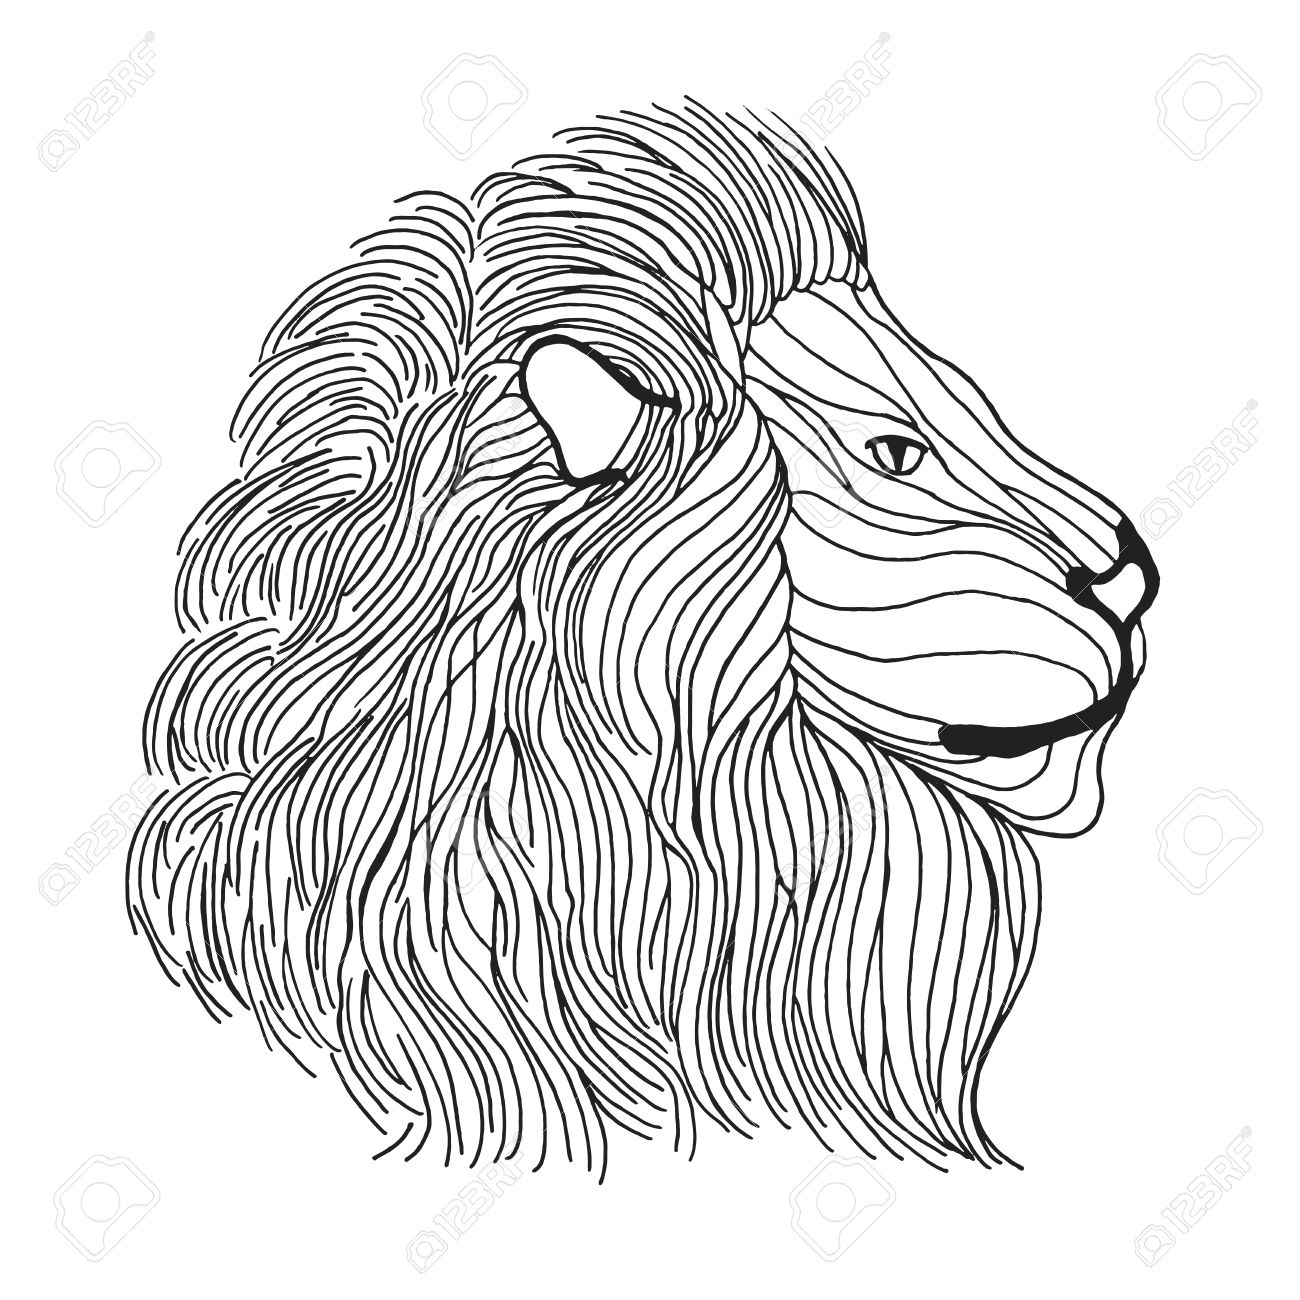 1300x1300 Lion Head. Adult Antistress Coloring Page. Black White Hand Drawn